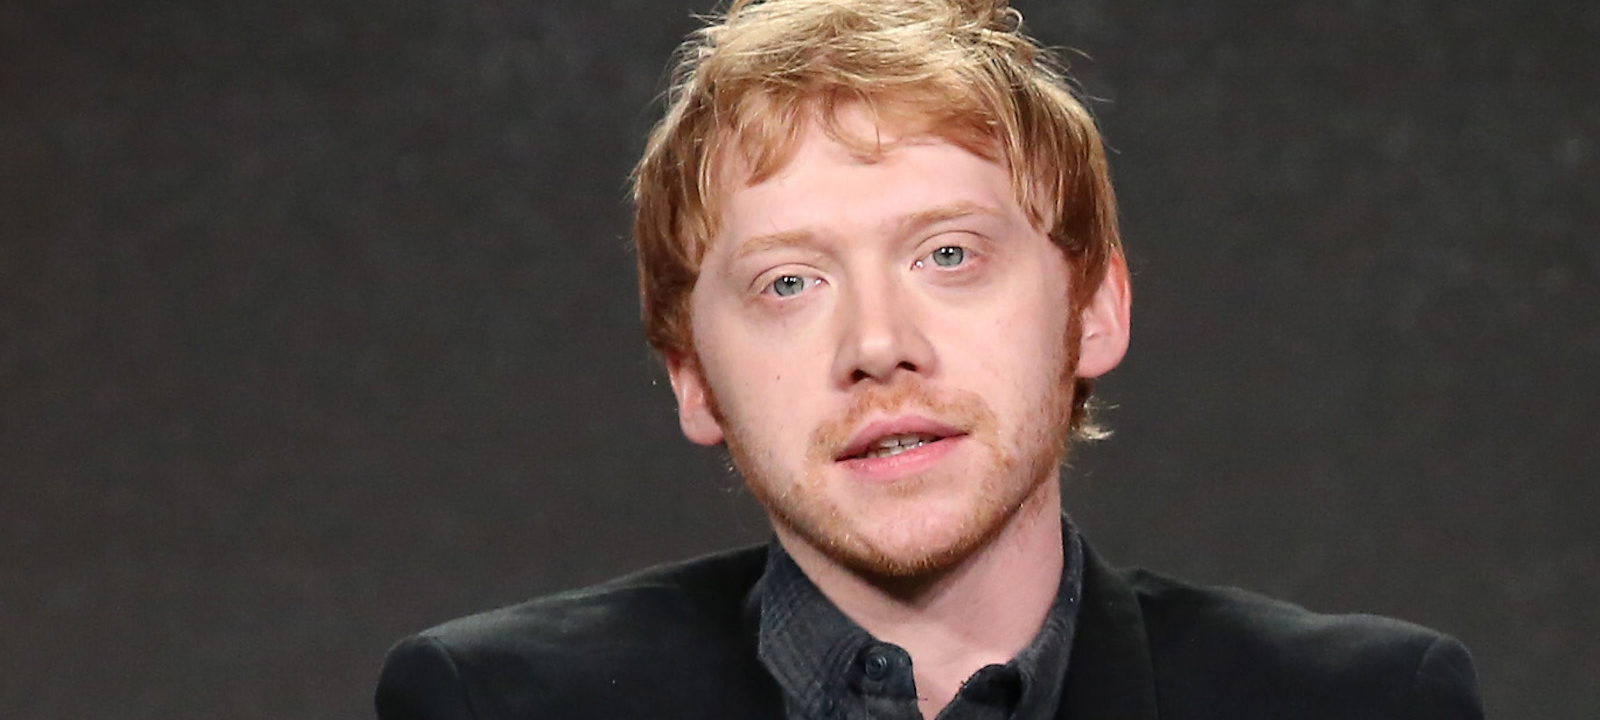 Actor Rupert Grint of the series 'Snatch' speak onstage during the Crackle portion of the 2017 Winter Television Critics Association Press Tour at the Langham Hotel on January 13, 2017 in Pasadena, California.